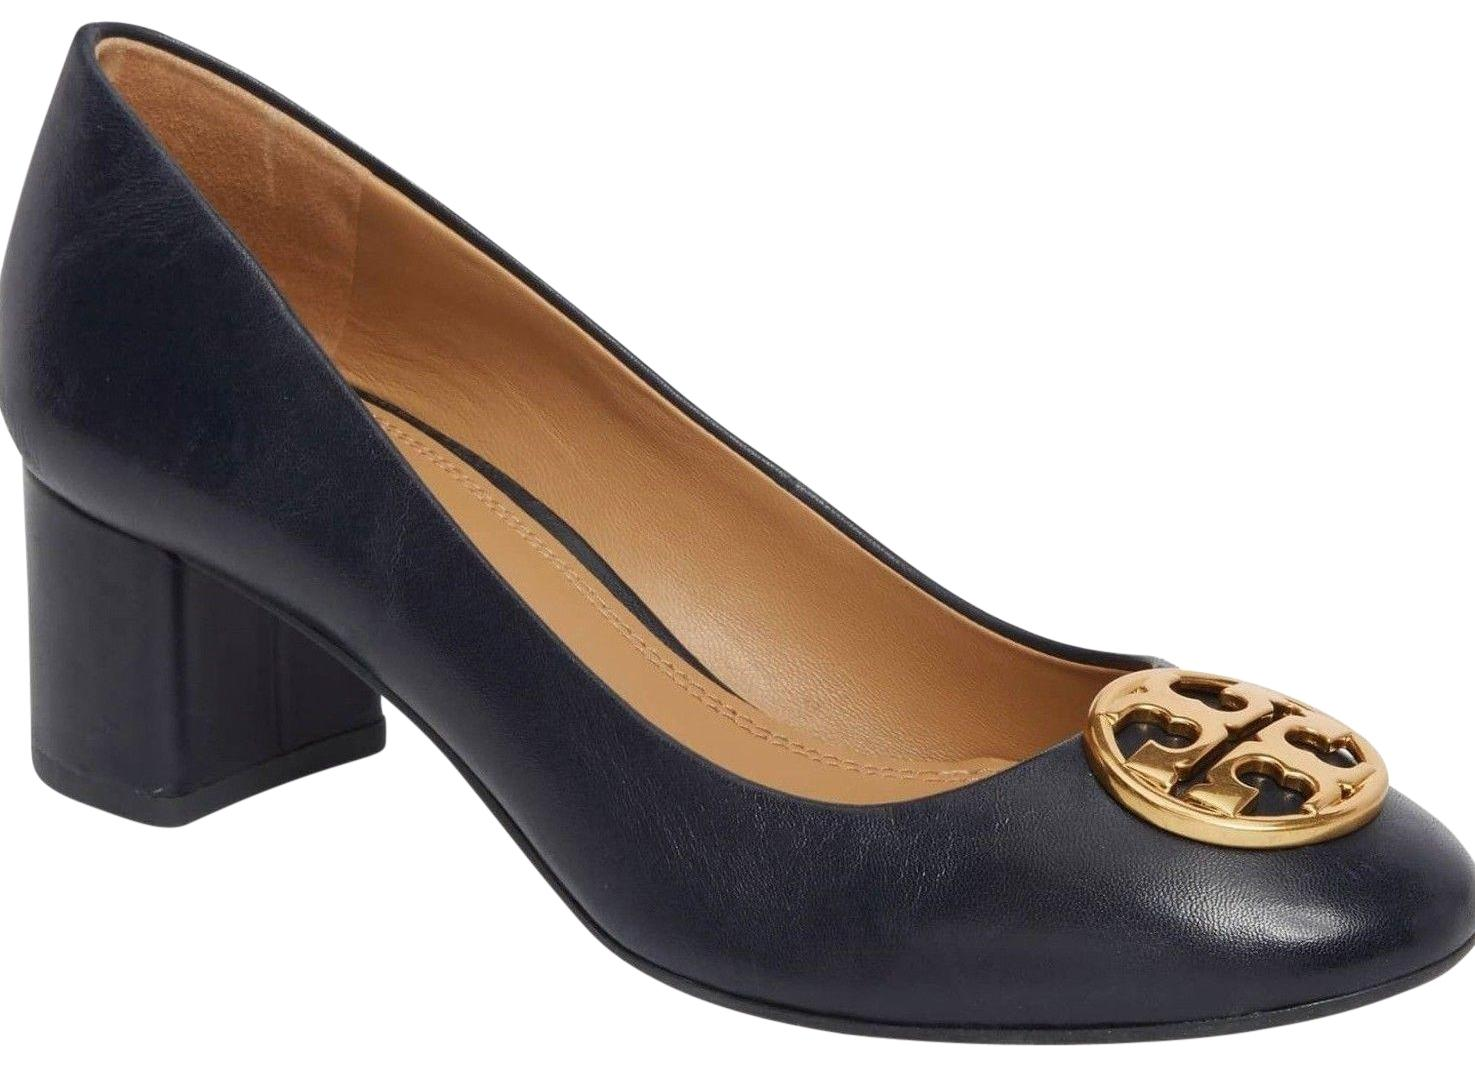 Tory Burch Navy Blue New Gold Logo Leather Heels Pumps Size US 9.5 Regular (M, B)